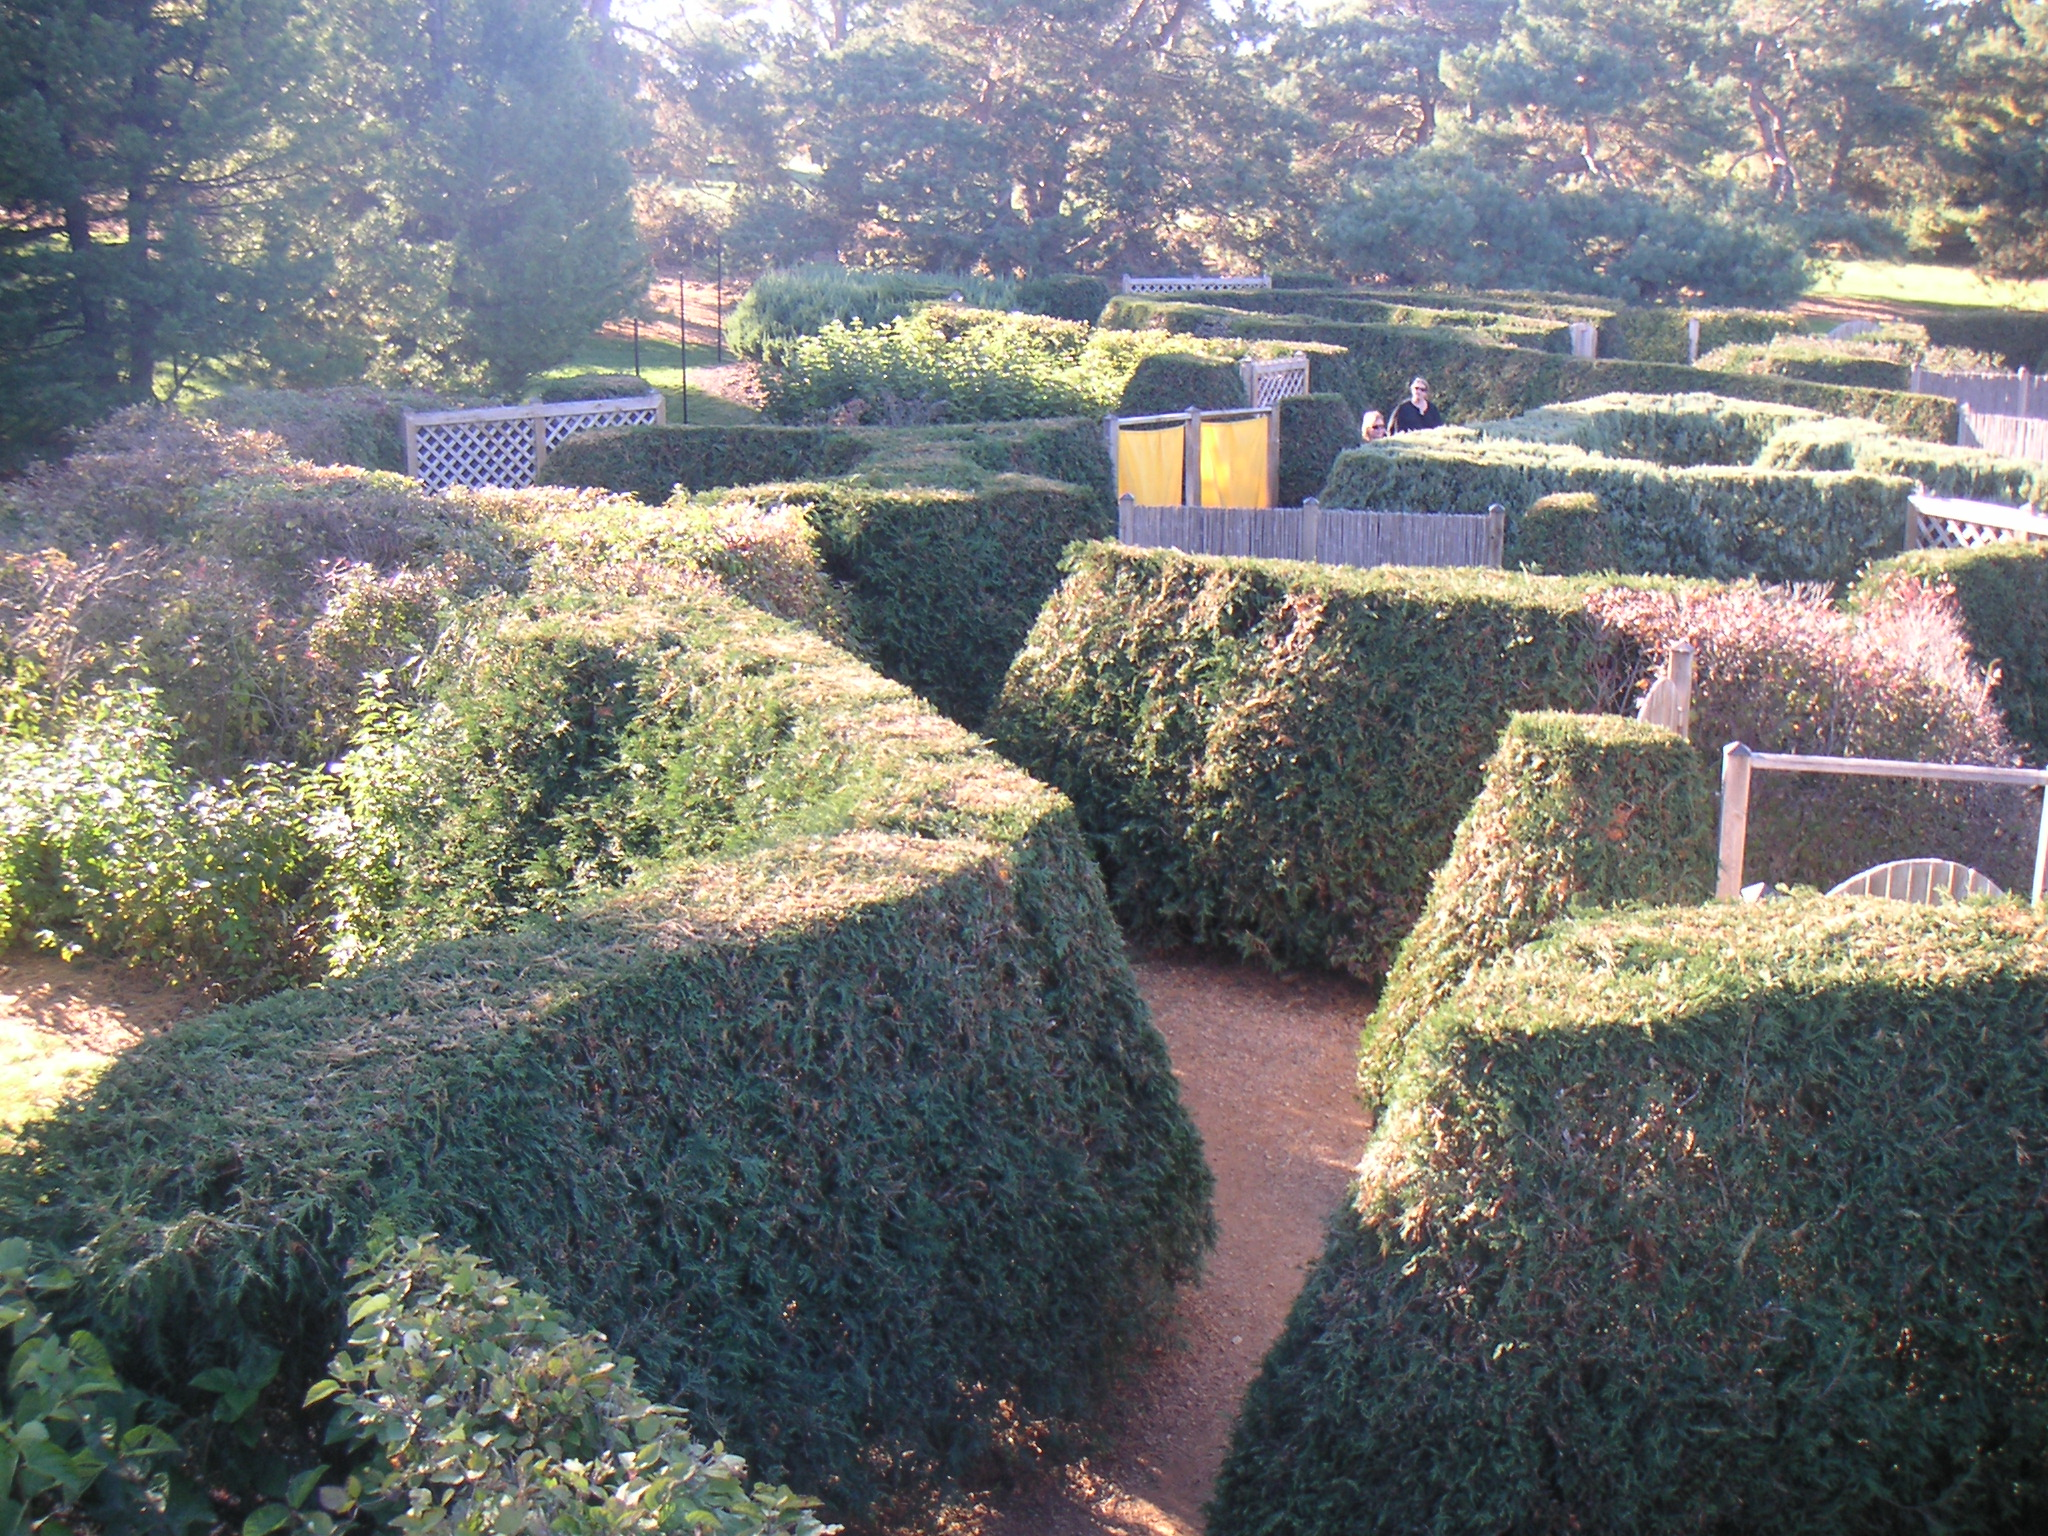 The Minnesota Landscape Arboretum's Hedge Maze